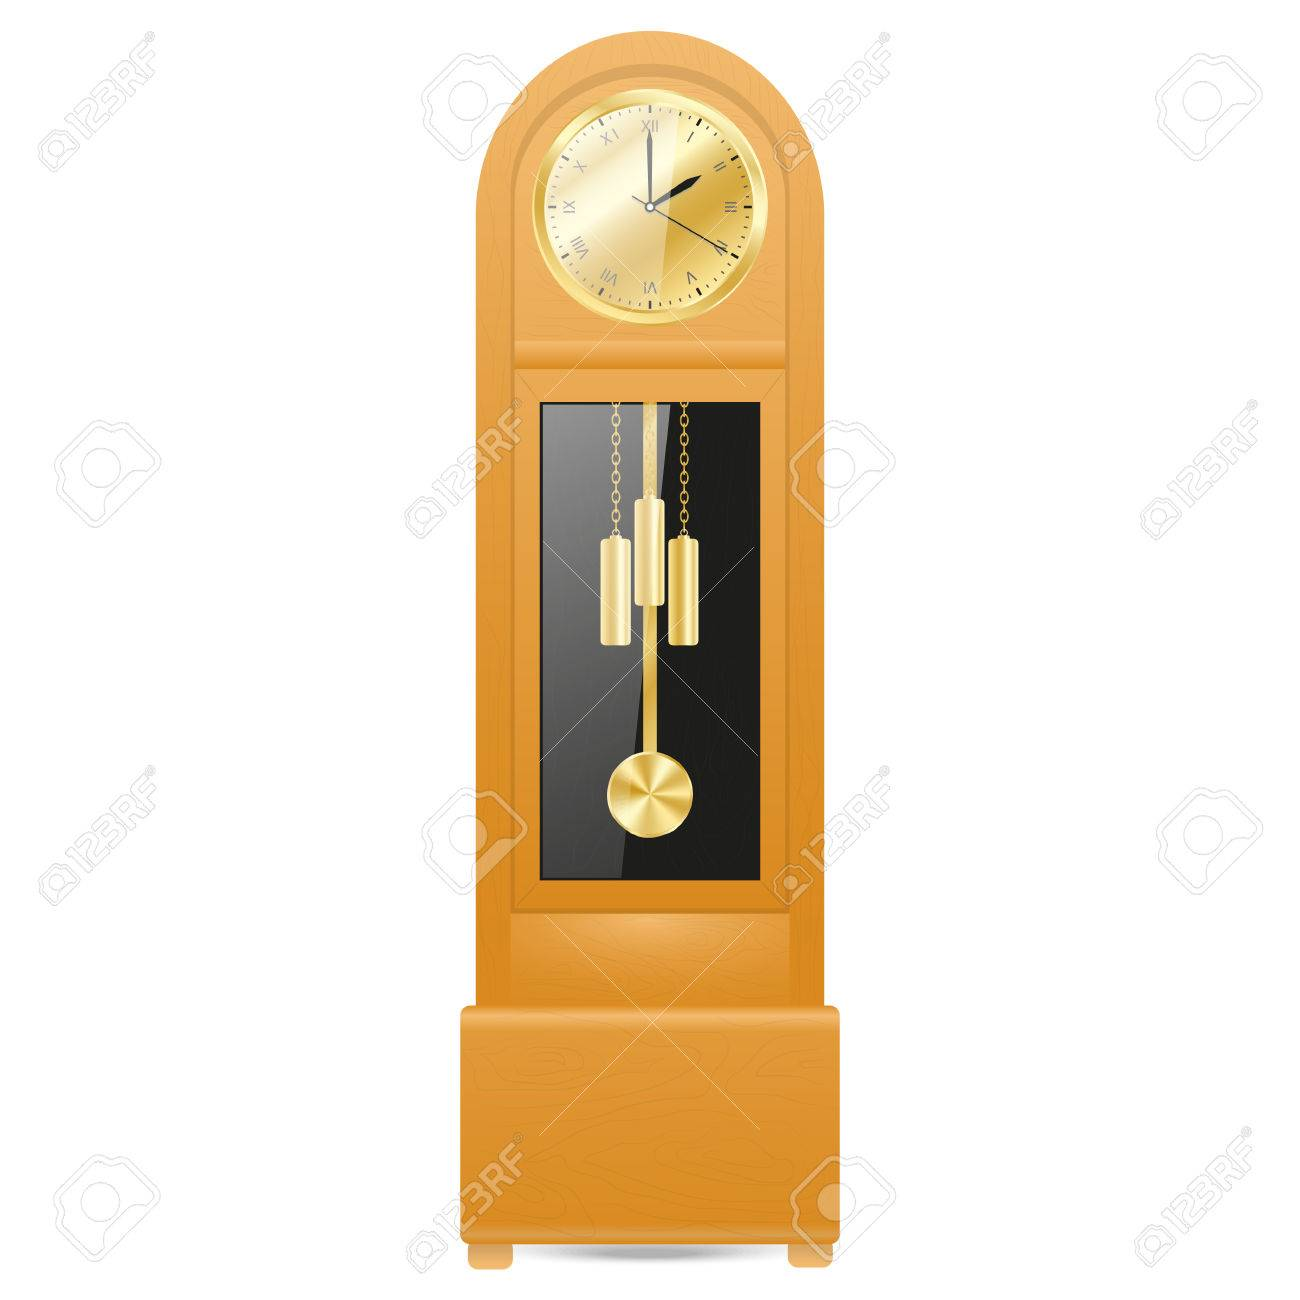 Grandfather Clock In A Wooden Case With A Gold Colored Metal